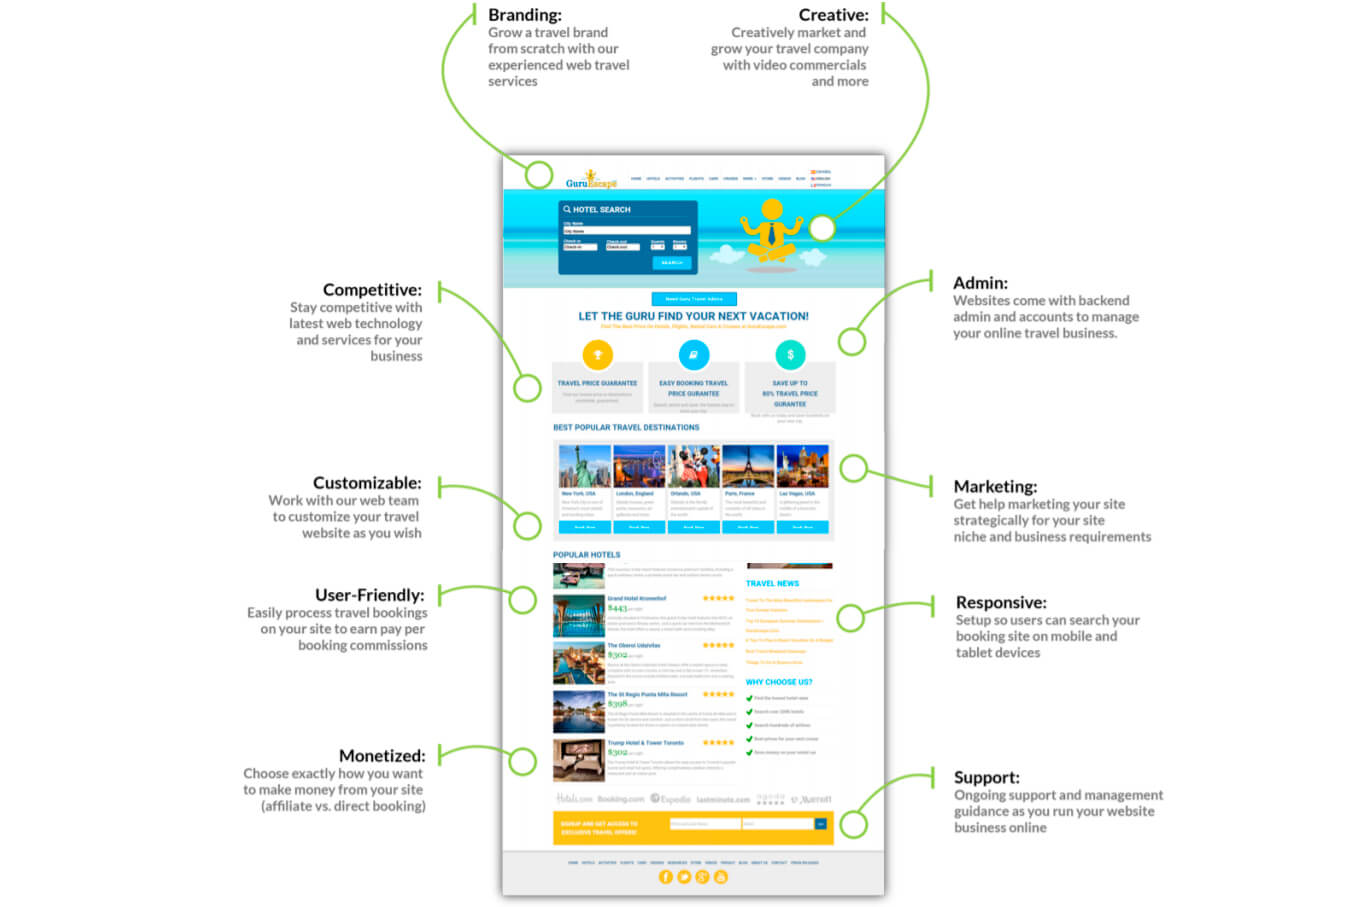 Existing opportunities for creating a travel booking website